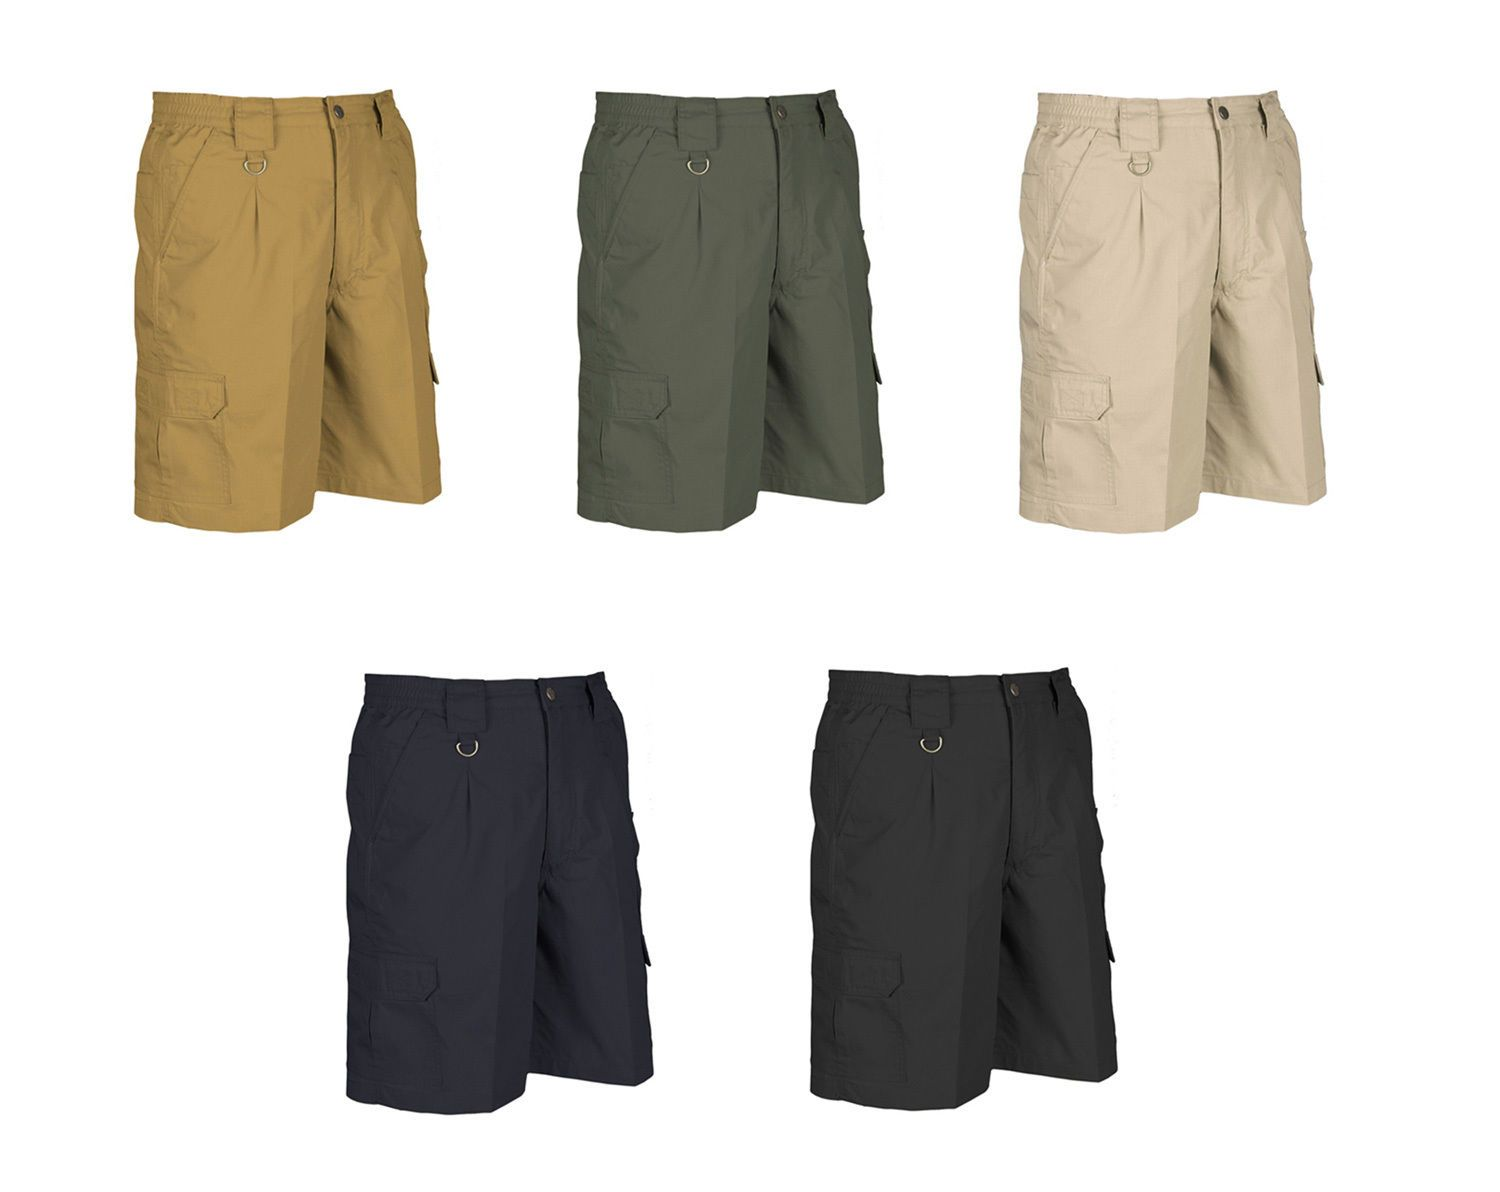 Pants and Shorts 163525: Propper Men S Tactical Short 65P 35C Ripstop W Teflon F5253 -> BUY IT NOW ONLY: $33.95 on eBay!